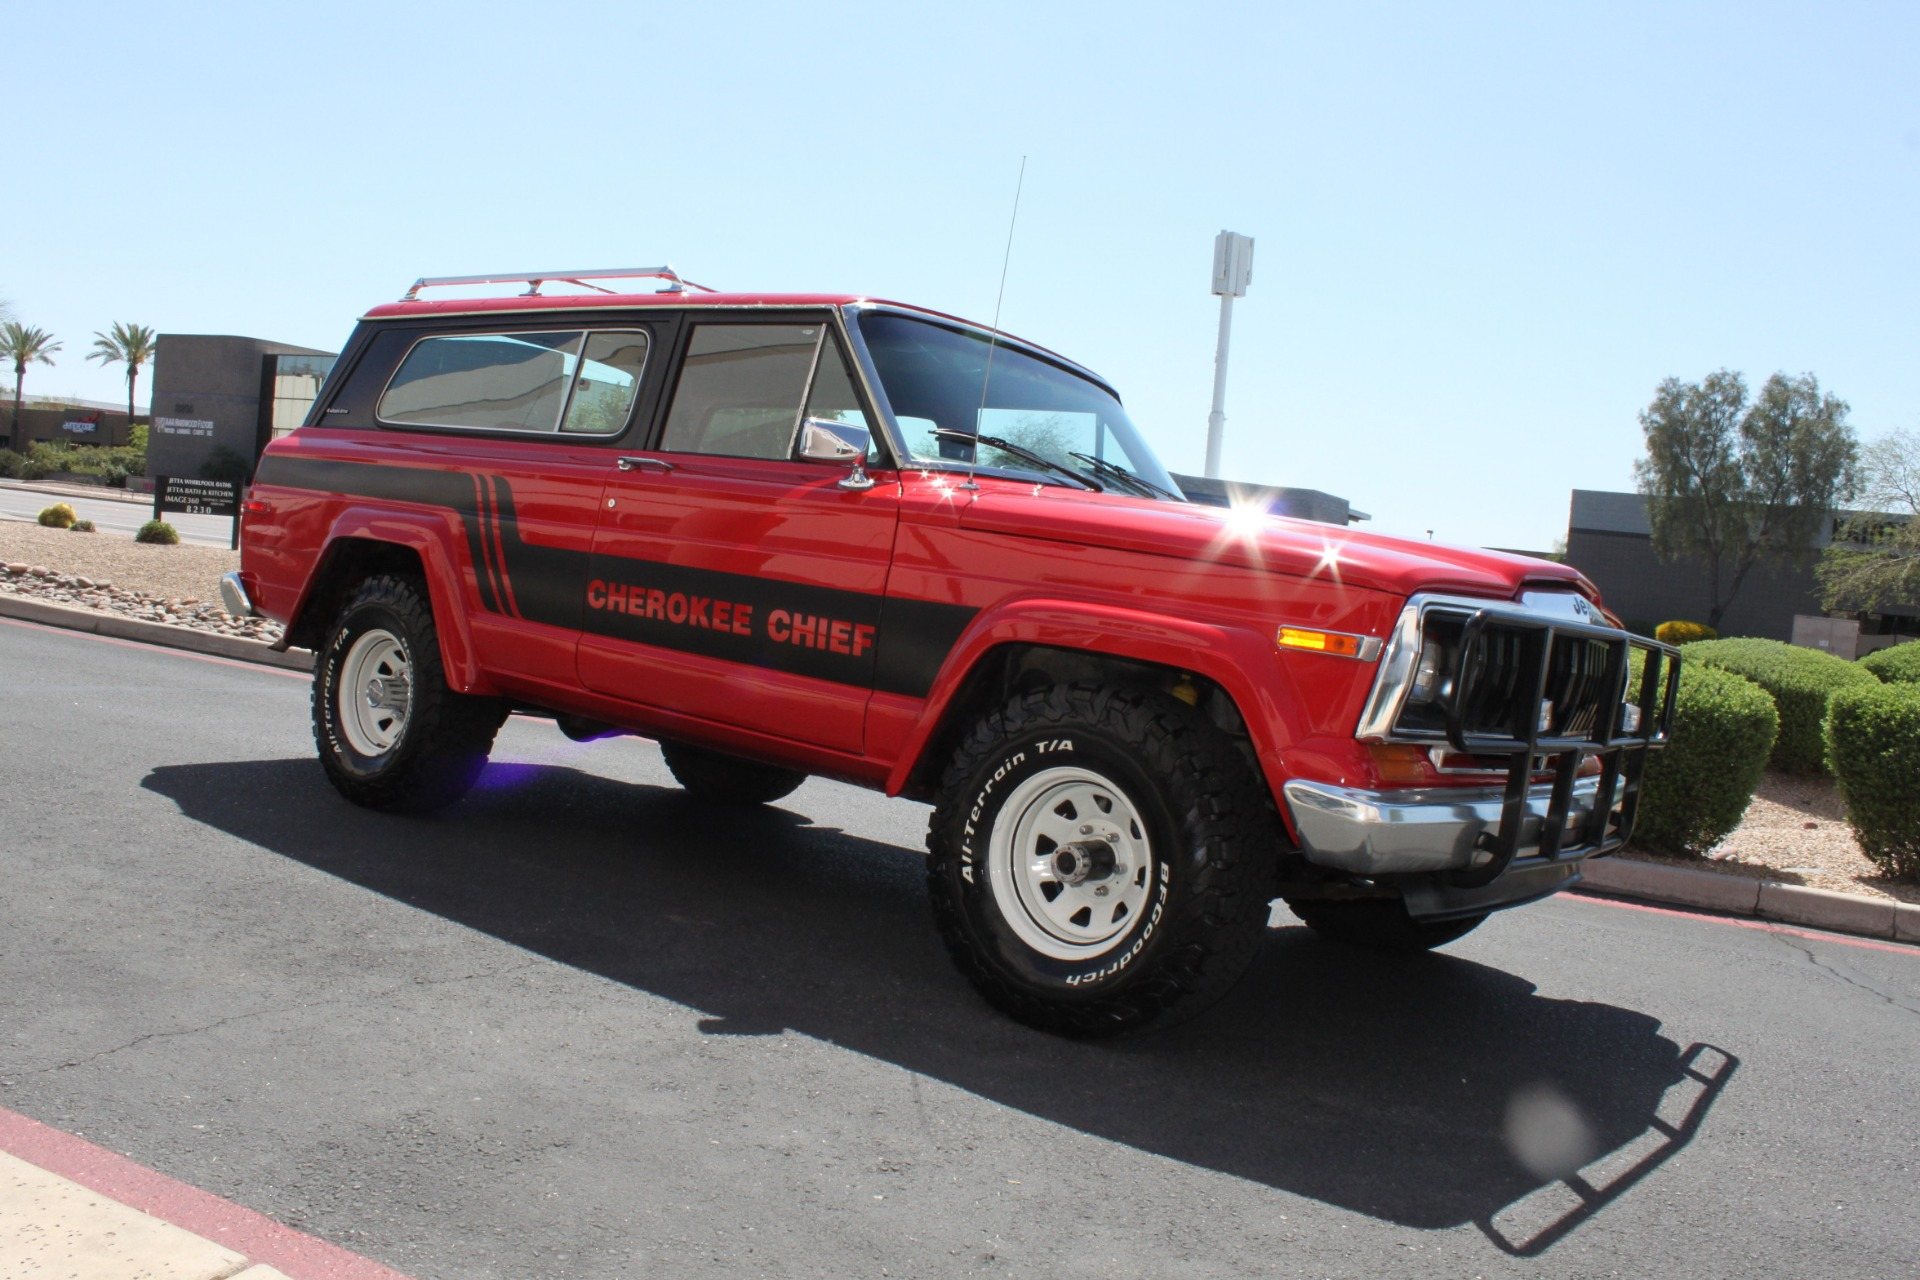 Used-1983-Jeep-Cherokee-4WD-Chief-Chevrolet